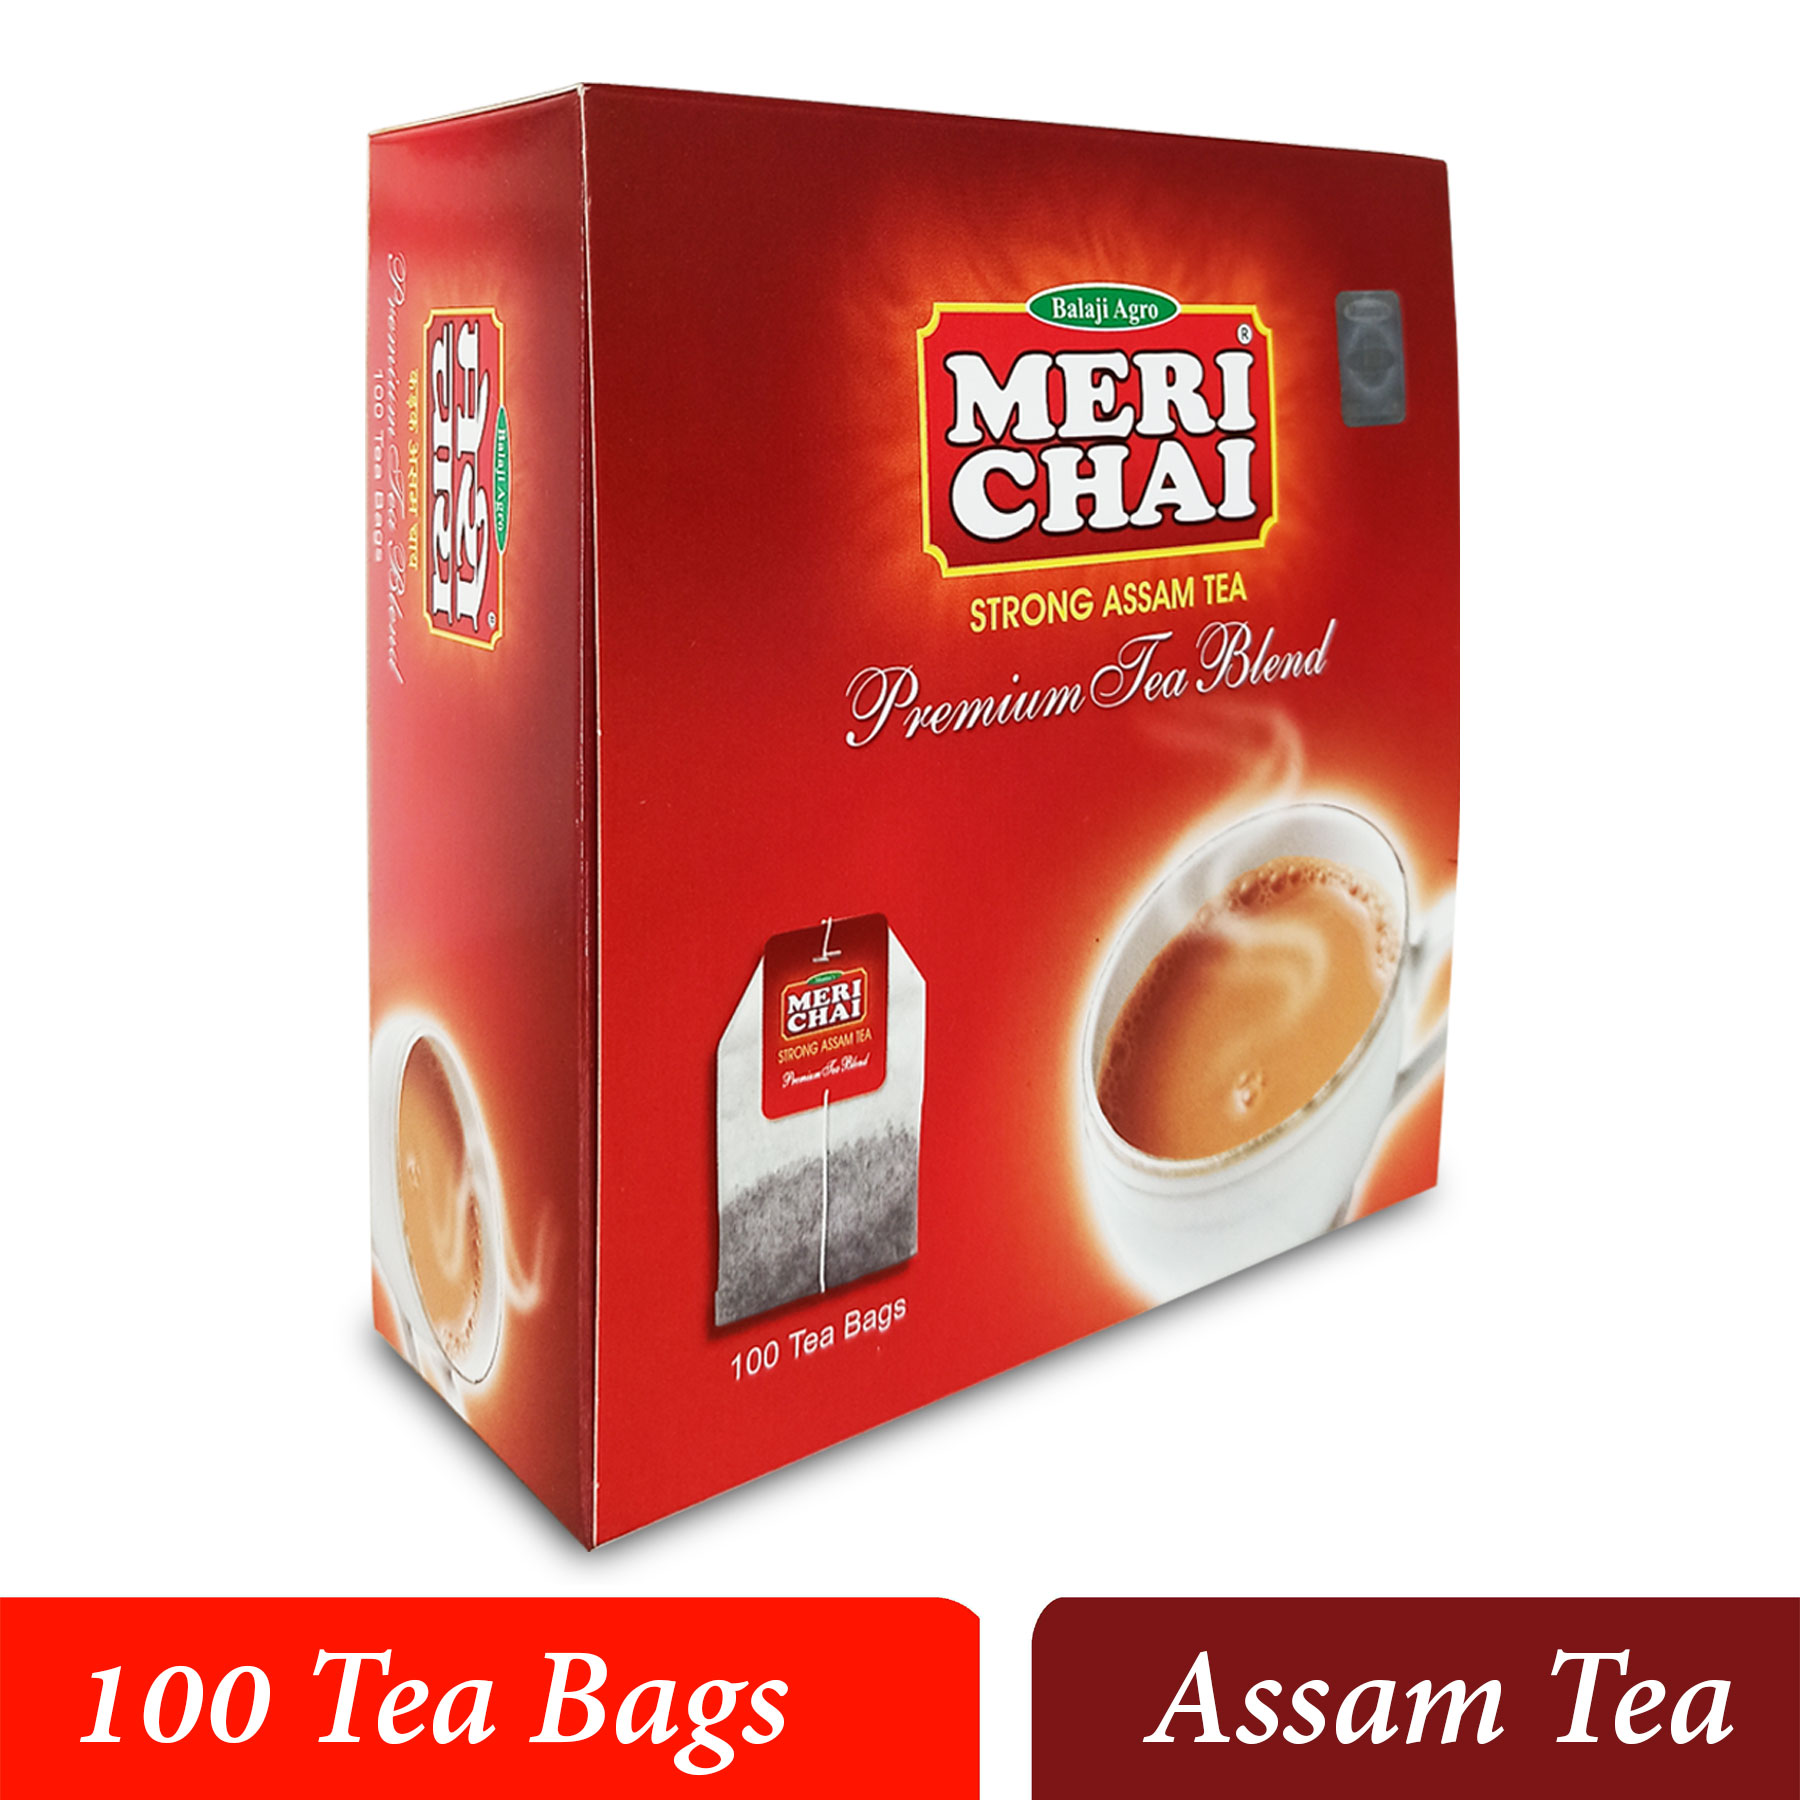 MERI CHAI Strong Assam Tea Premium Tea Blend 100 Tea Bags